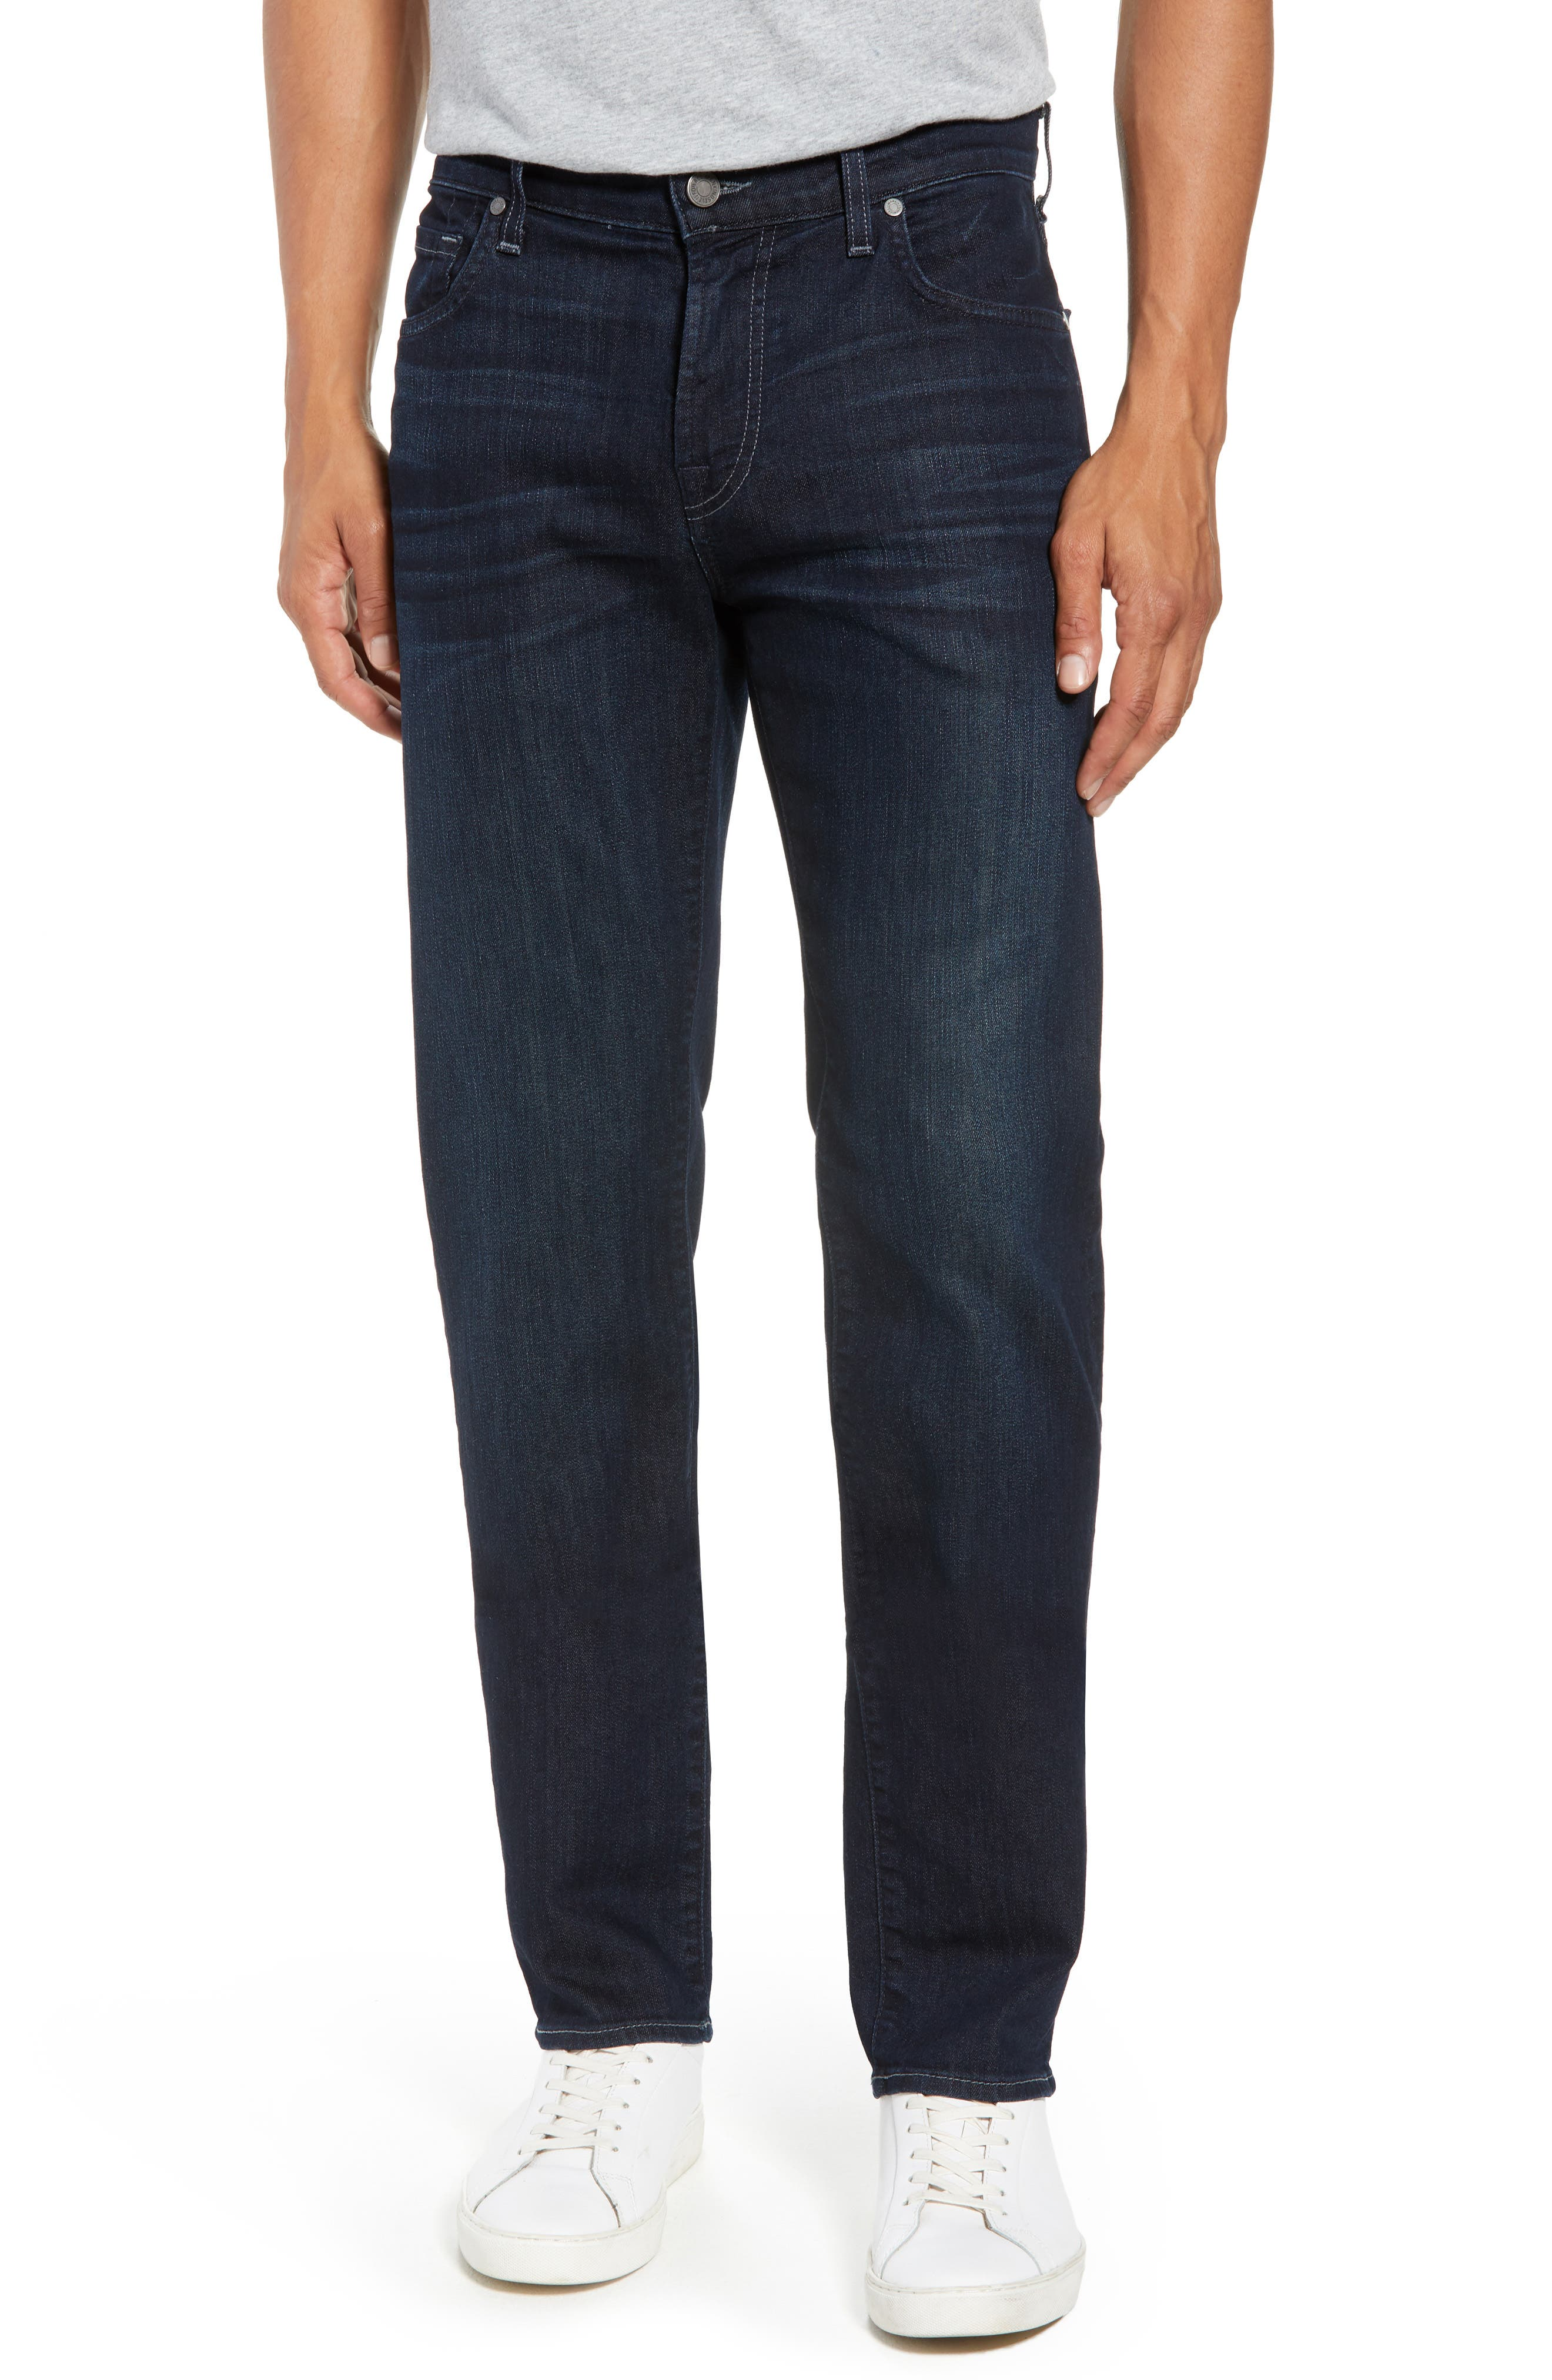 Airweft Standard Straight Leg Jeans,                         Main,                         color, Perennial